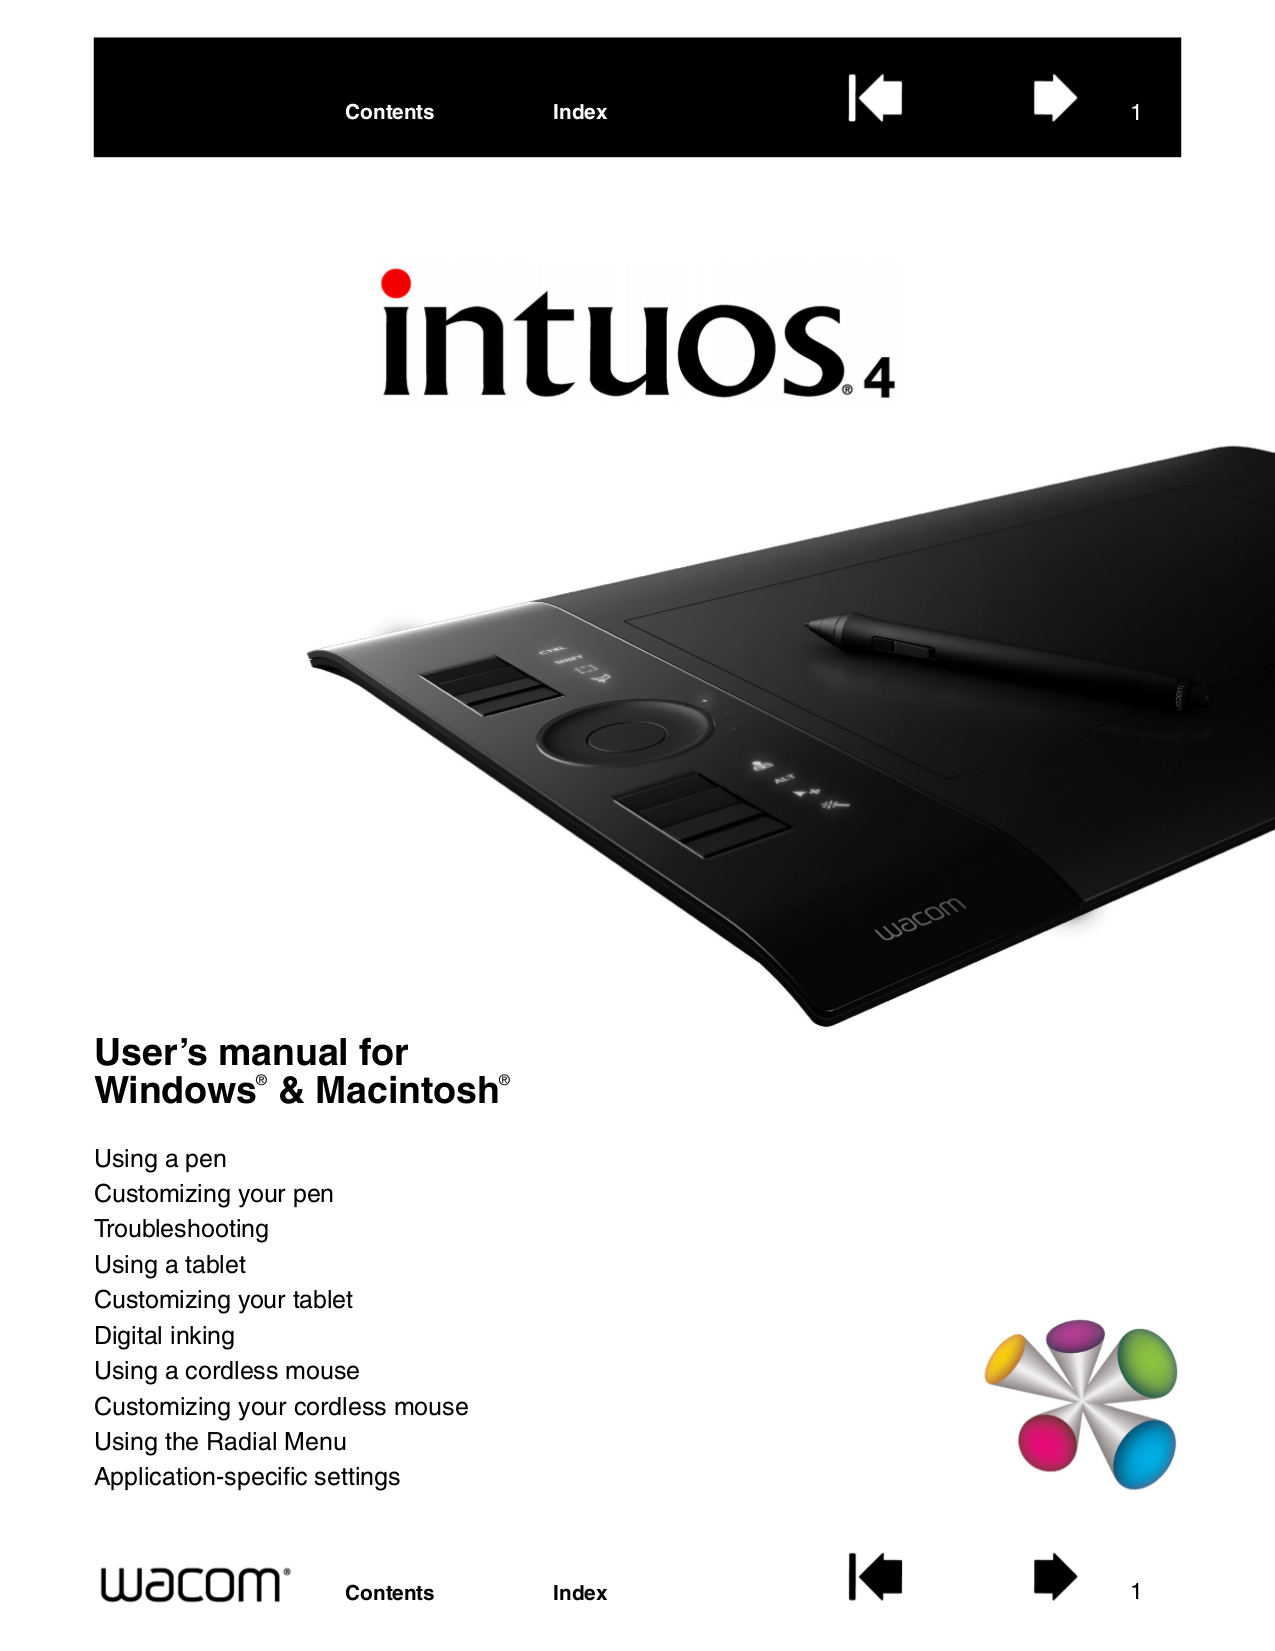 Ptkw digitizer user manual intuos4 user's manual for windows.